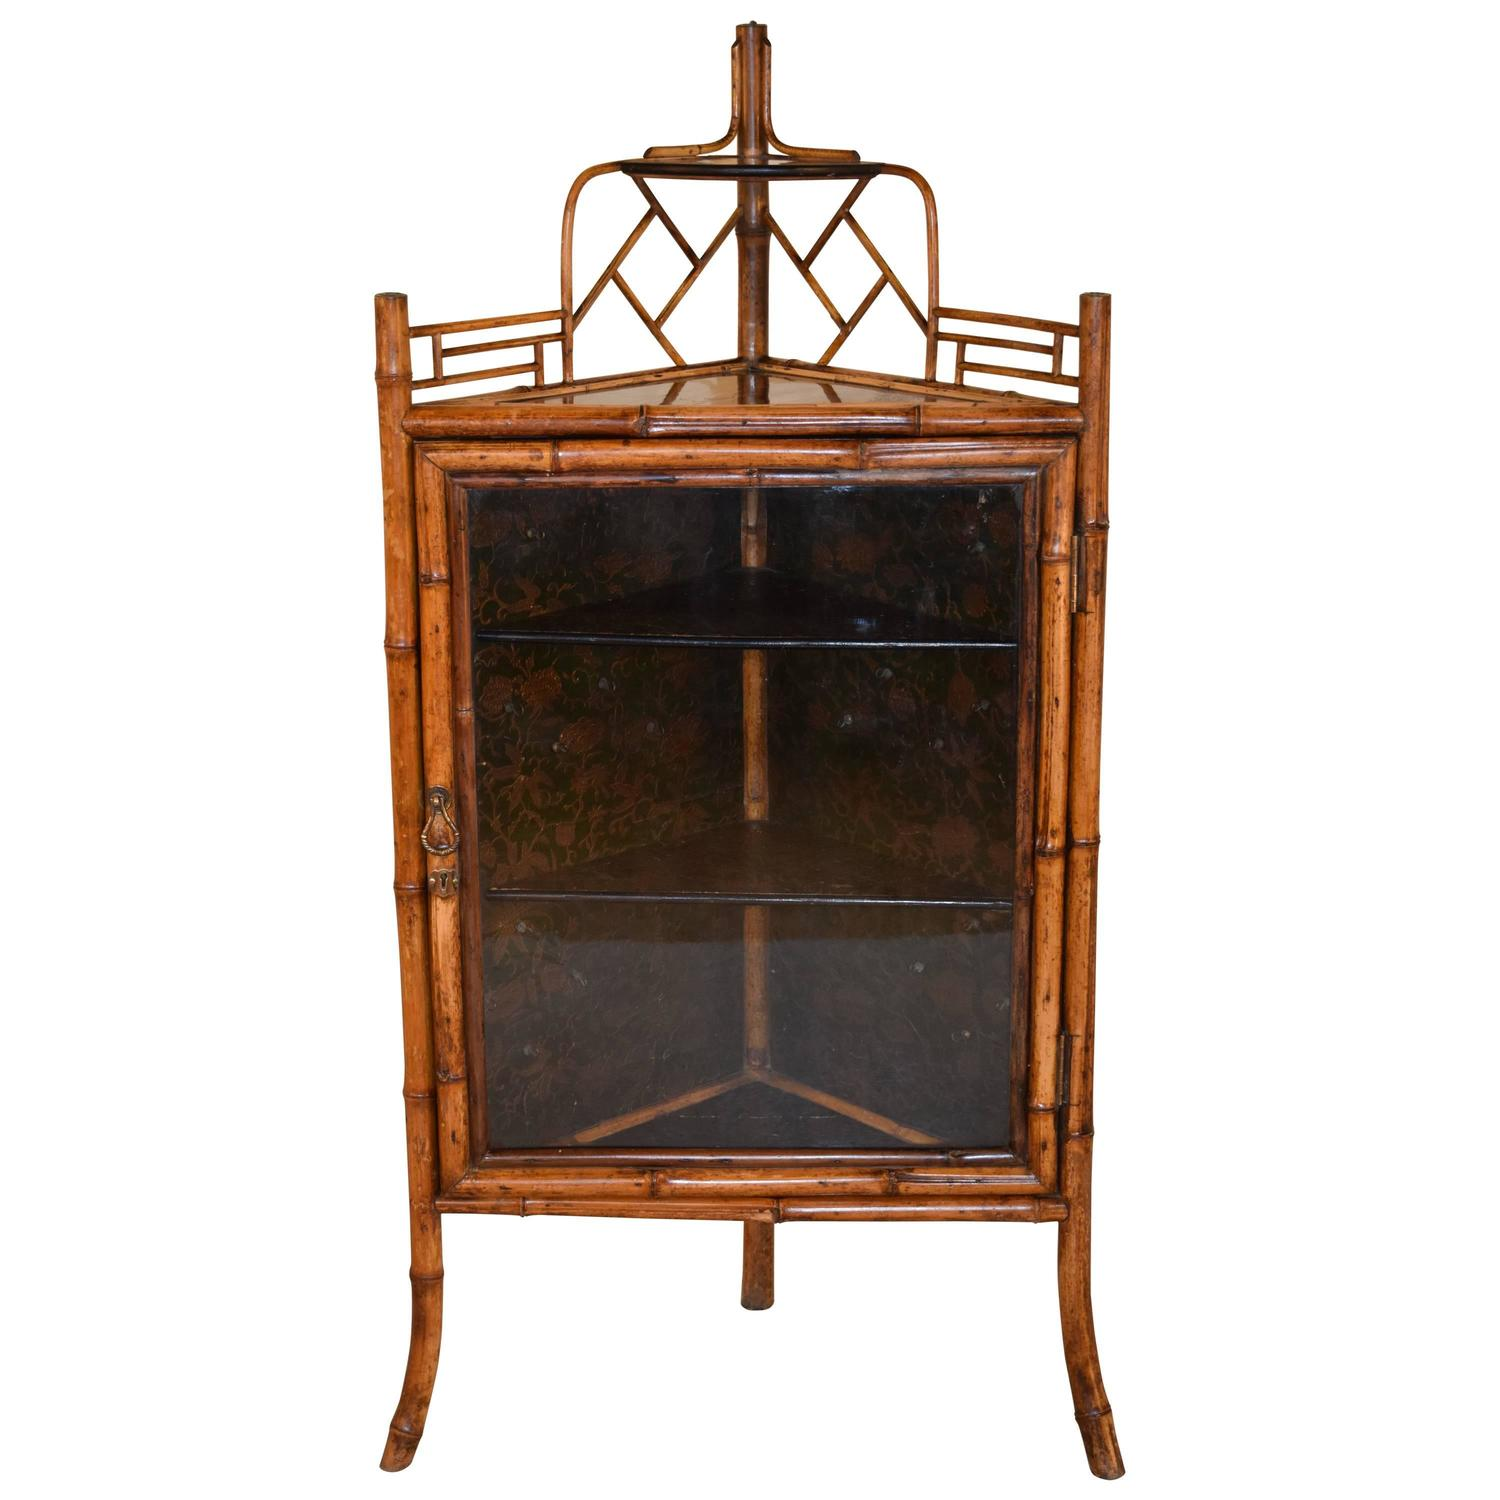 19th century french bamboo corner cabinet for sale at 1stdibs for Bamboo kitchen cabinets for sale